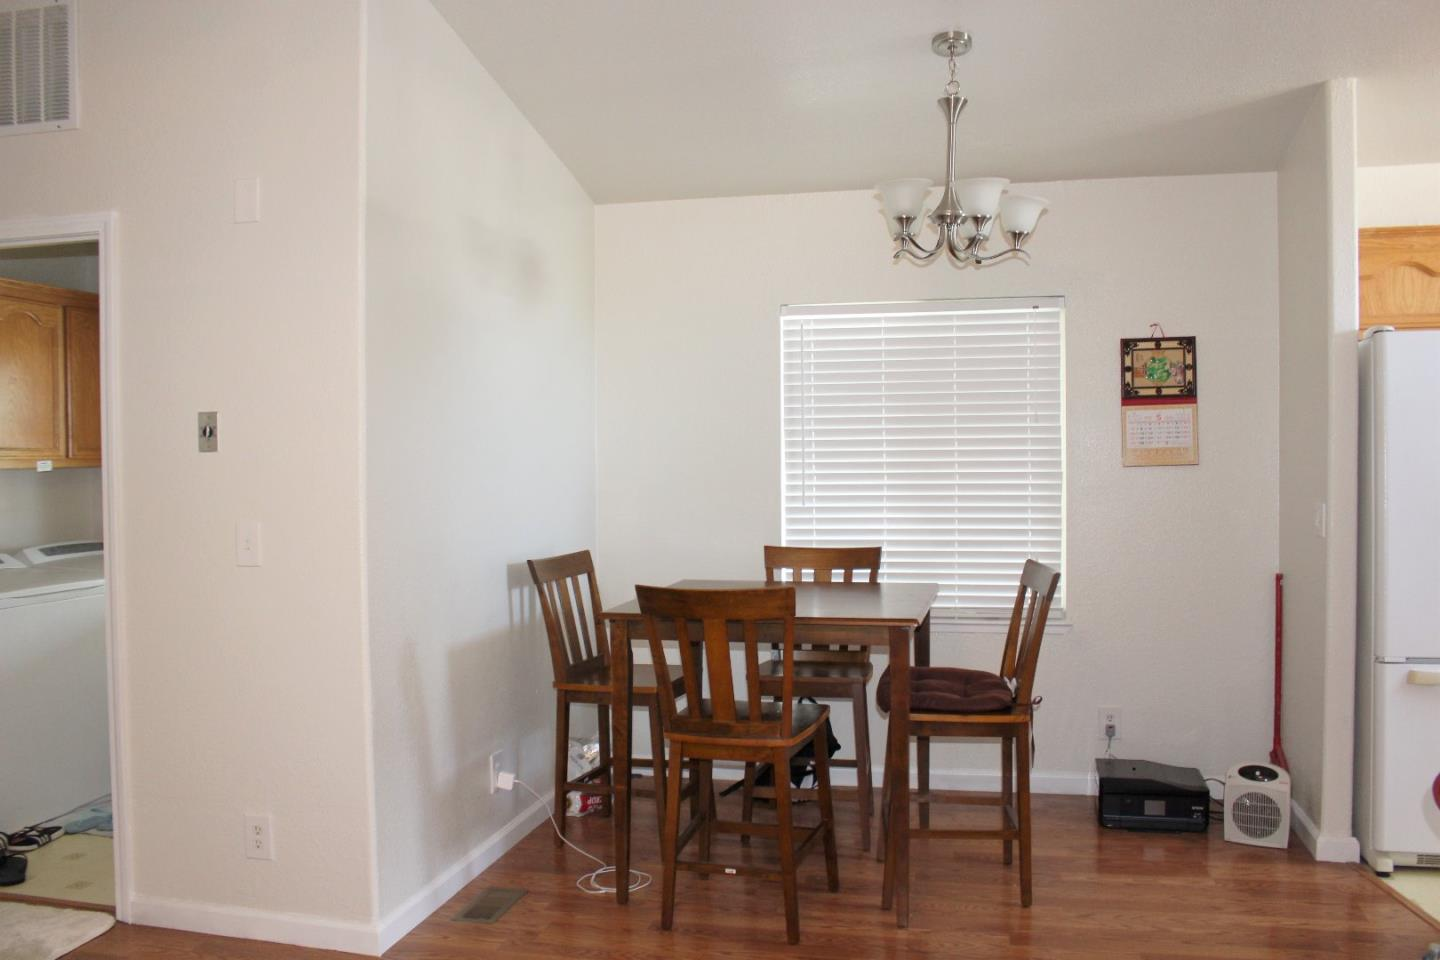 Additional photo for property listing at 411 Lewis Road  San Jose, カリフォルニア 95111 アメリカ合衆国